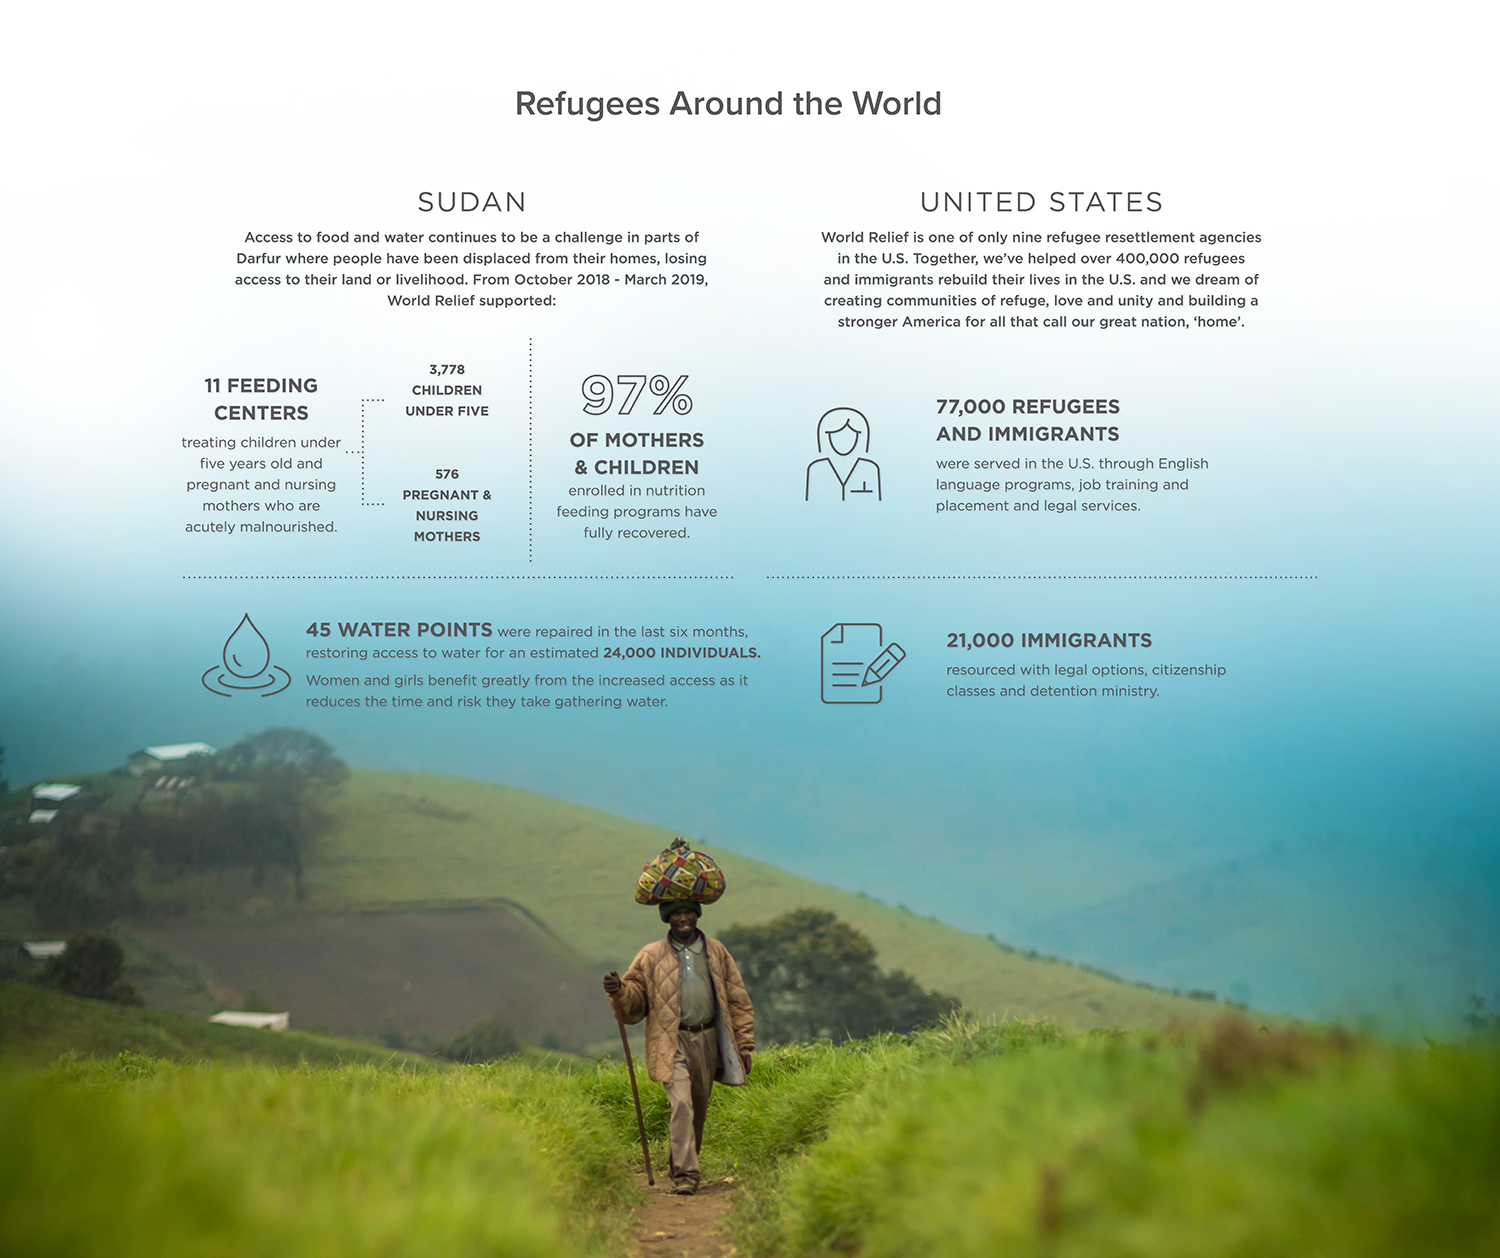 World-Relief_Refugees-Around-the-World_HomePage2.jpg